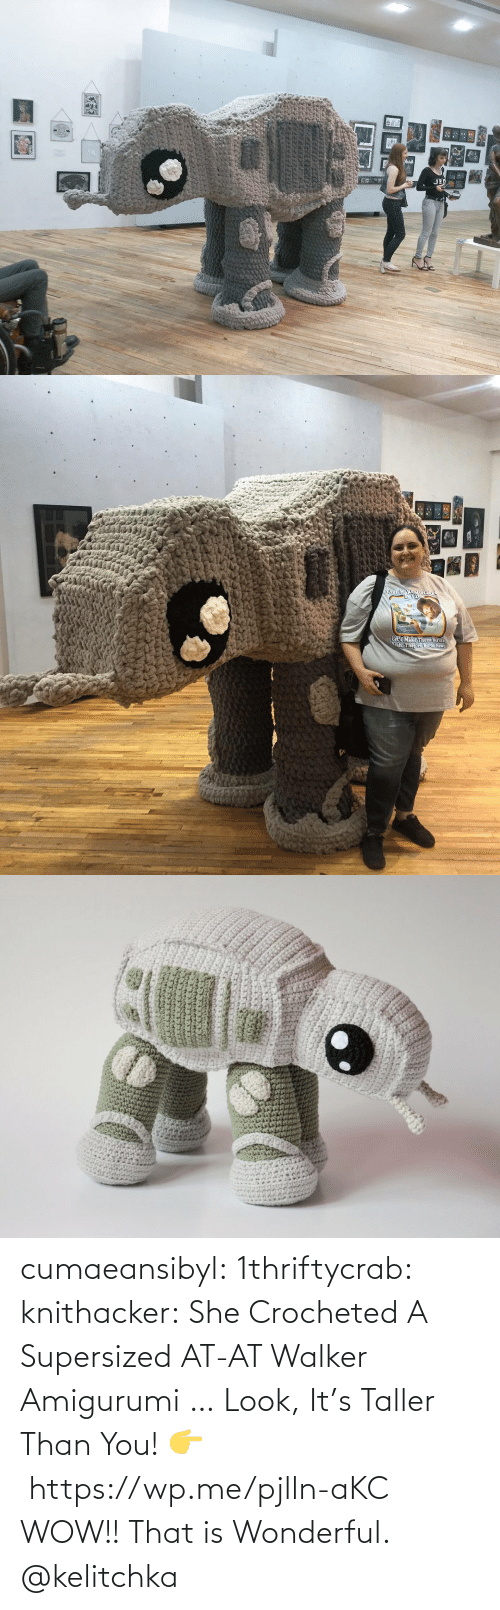 look: cumaeansibyl: 1thriftycrab:  knithacker:  She Crocheted A Supersized AT-AT Walker Amigurumi … Look, It's Taller Than You! 👉 https://wp.me/pjlln-aKC  WOW!! That is Wonderful.   @kelitchka